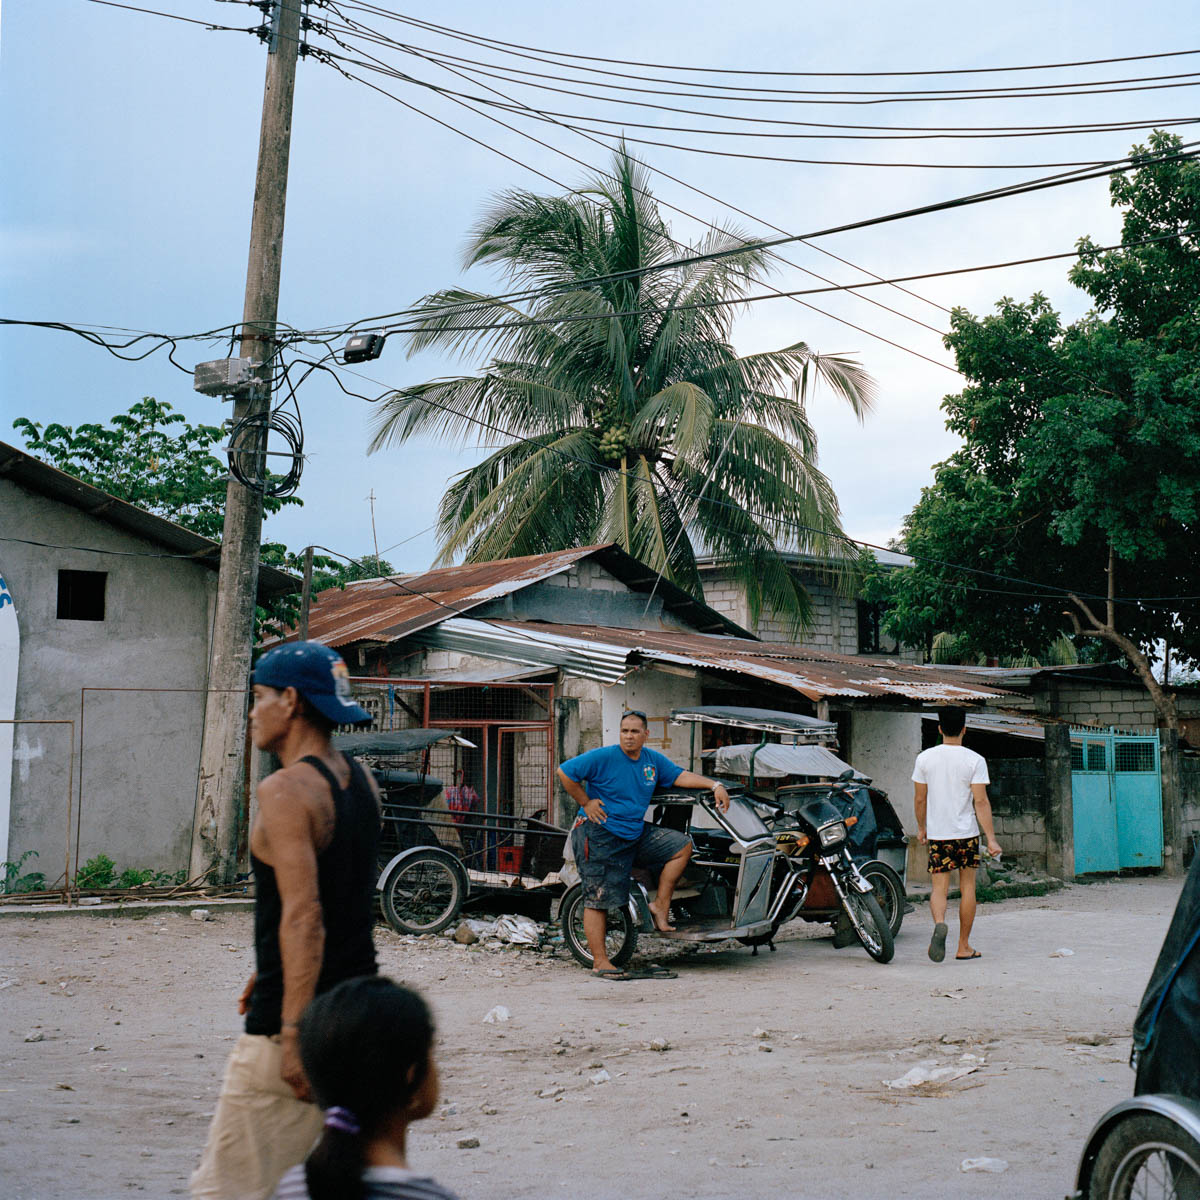 "Barangay  - Typical view, as a diptych, of Ipil-Ipil, a barangay (neighbourhood) surrounding Angeles City. Most of the sex-workers live in these areas. Angeles City, Philippines, August 2014. - Copyright © © S. Borcard - N. Metraux - Angeles - Central Luzon - Philippines - <A href=""https://maps.google.com/?ll=15.168055,120.586388&z=16"" target=""_blank"">(Map Barangay )</A>"